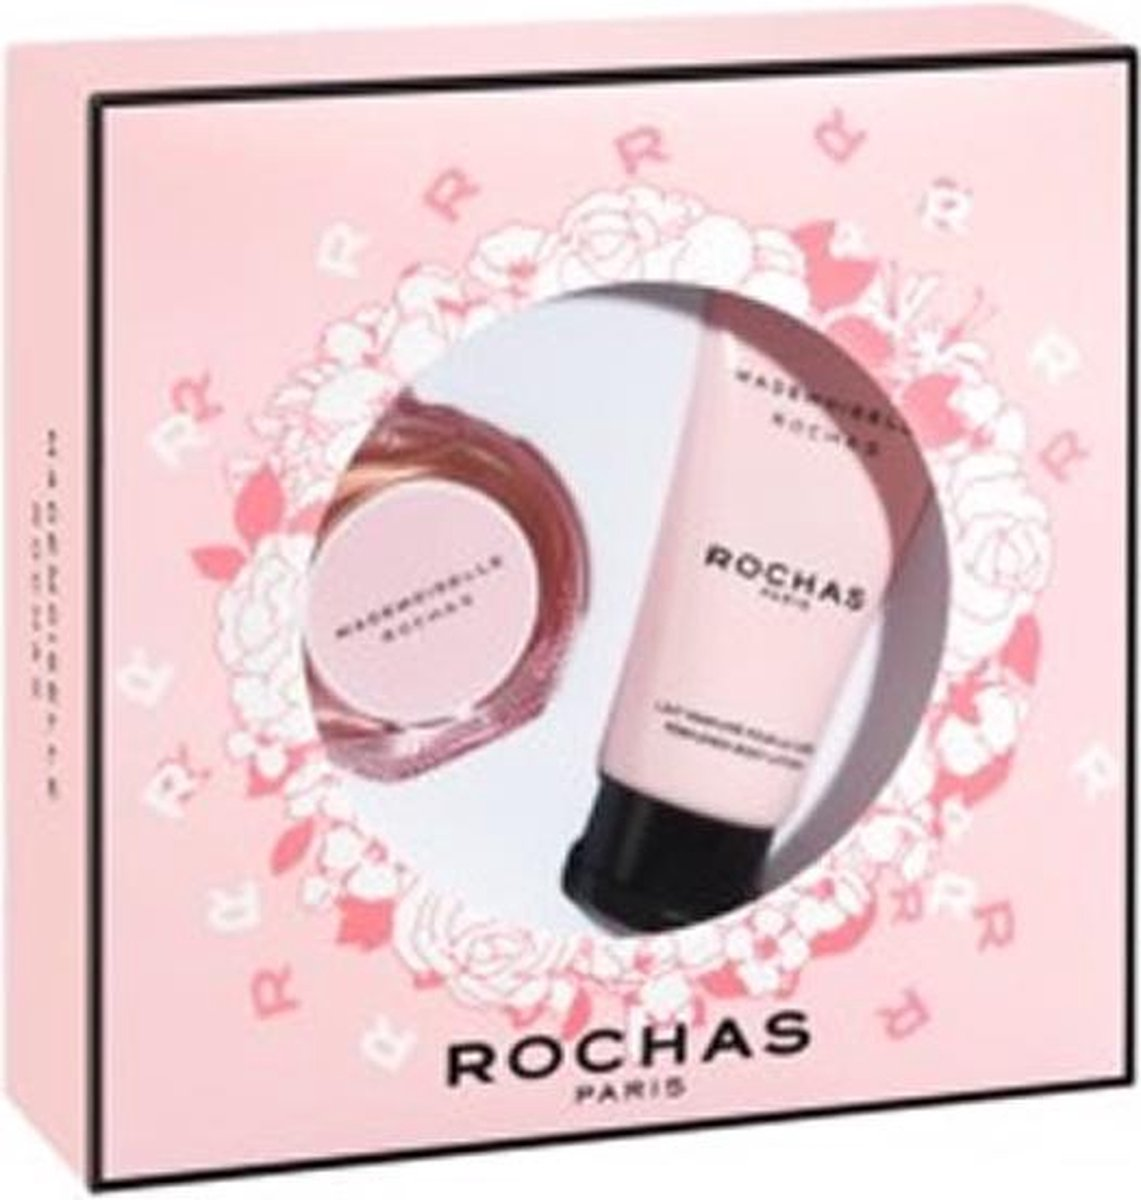 Sachajuan Rochas Mademoiselle Eau De Perfume Spray 30ml + Body Lotion 50ml